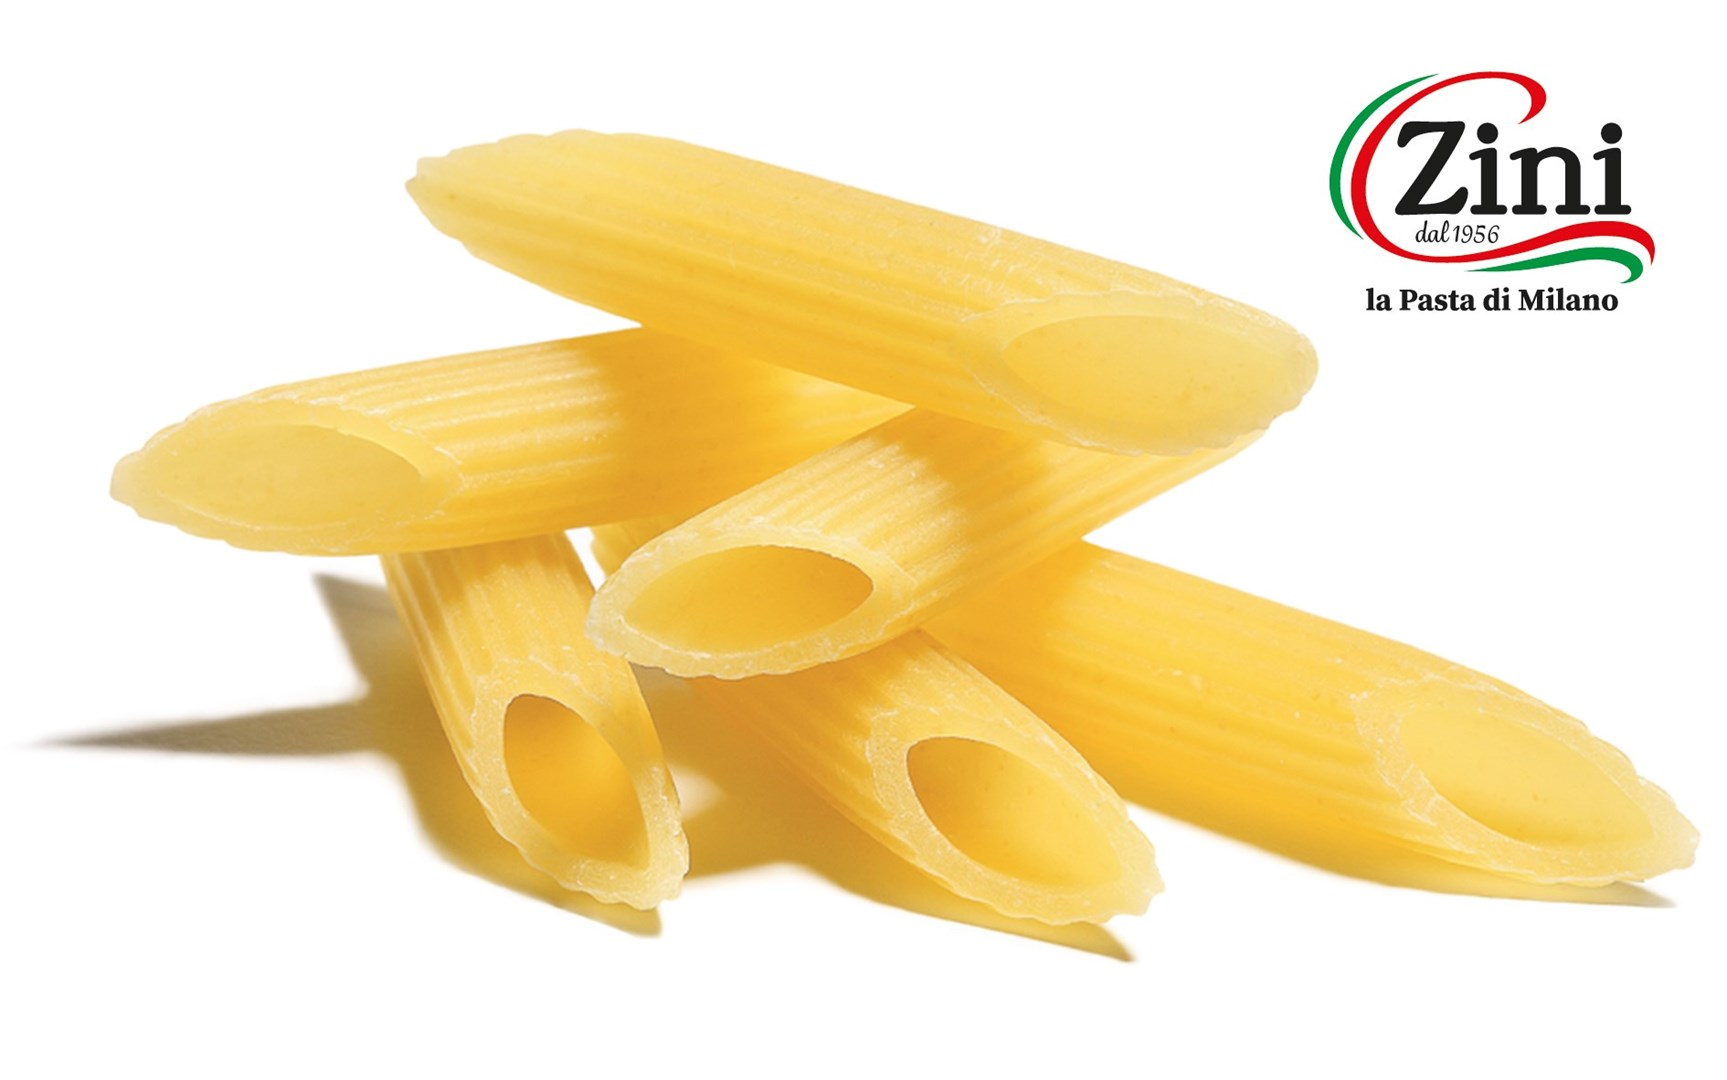 Productafbeelding Zini Pennette/Penne 1000 g diepvries